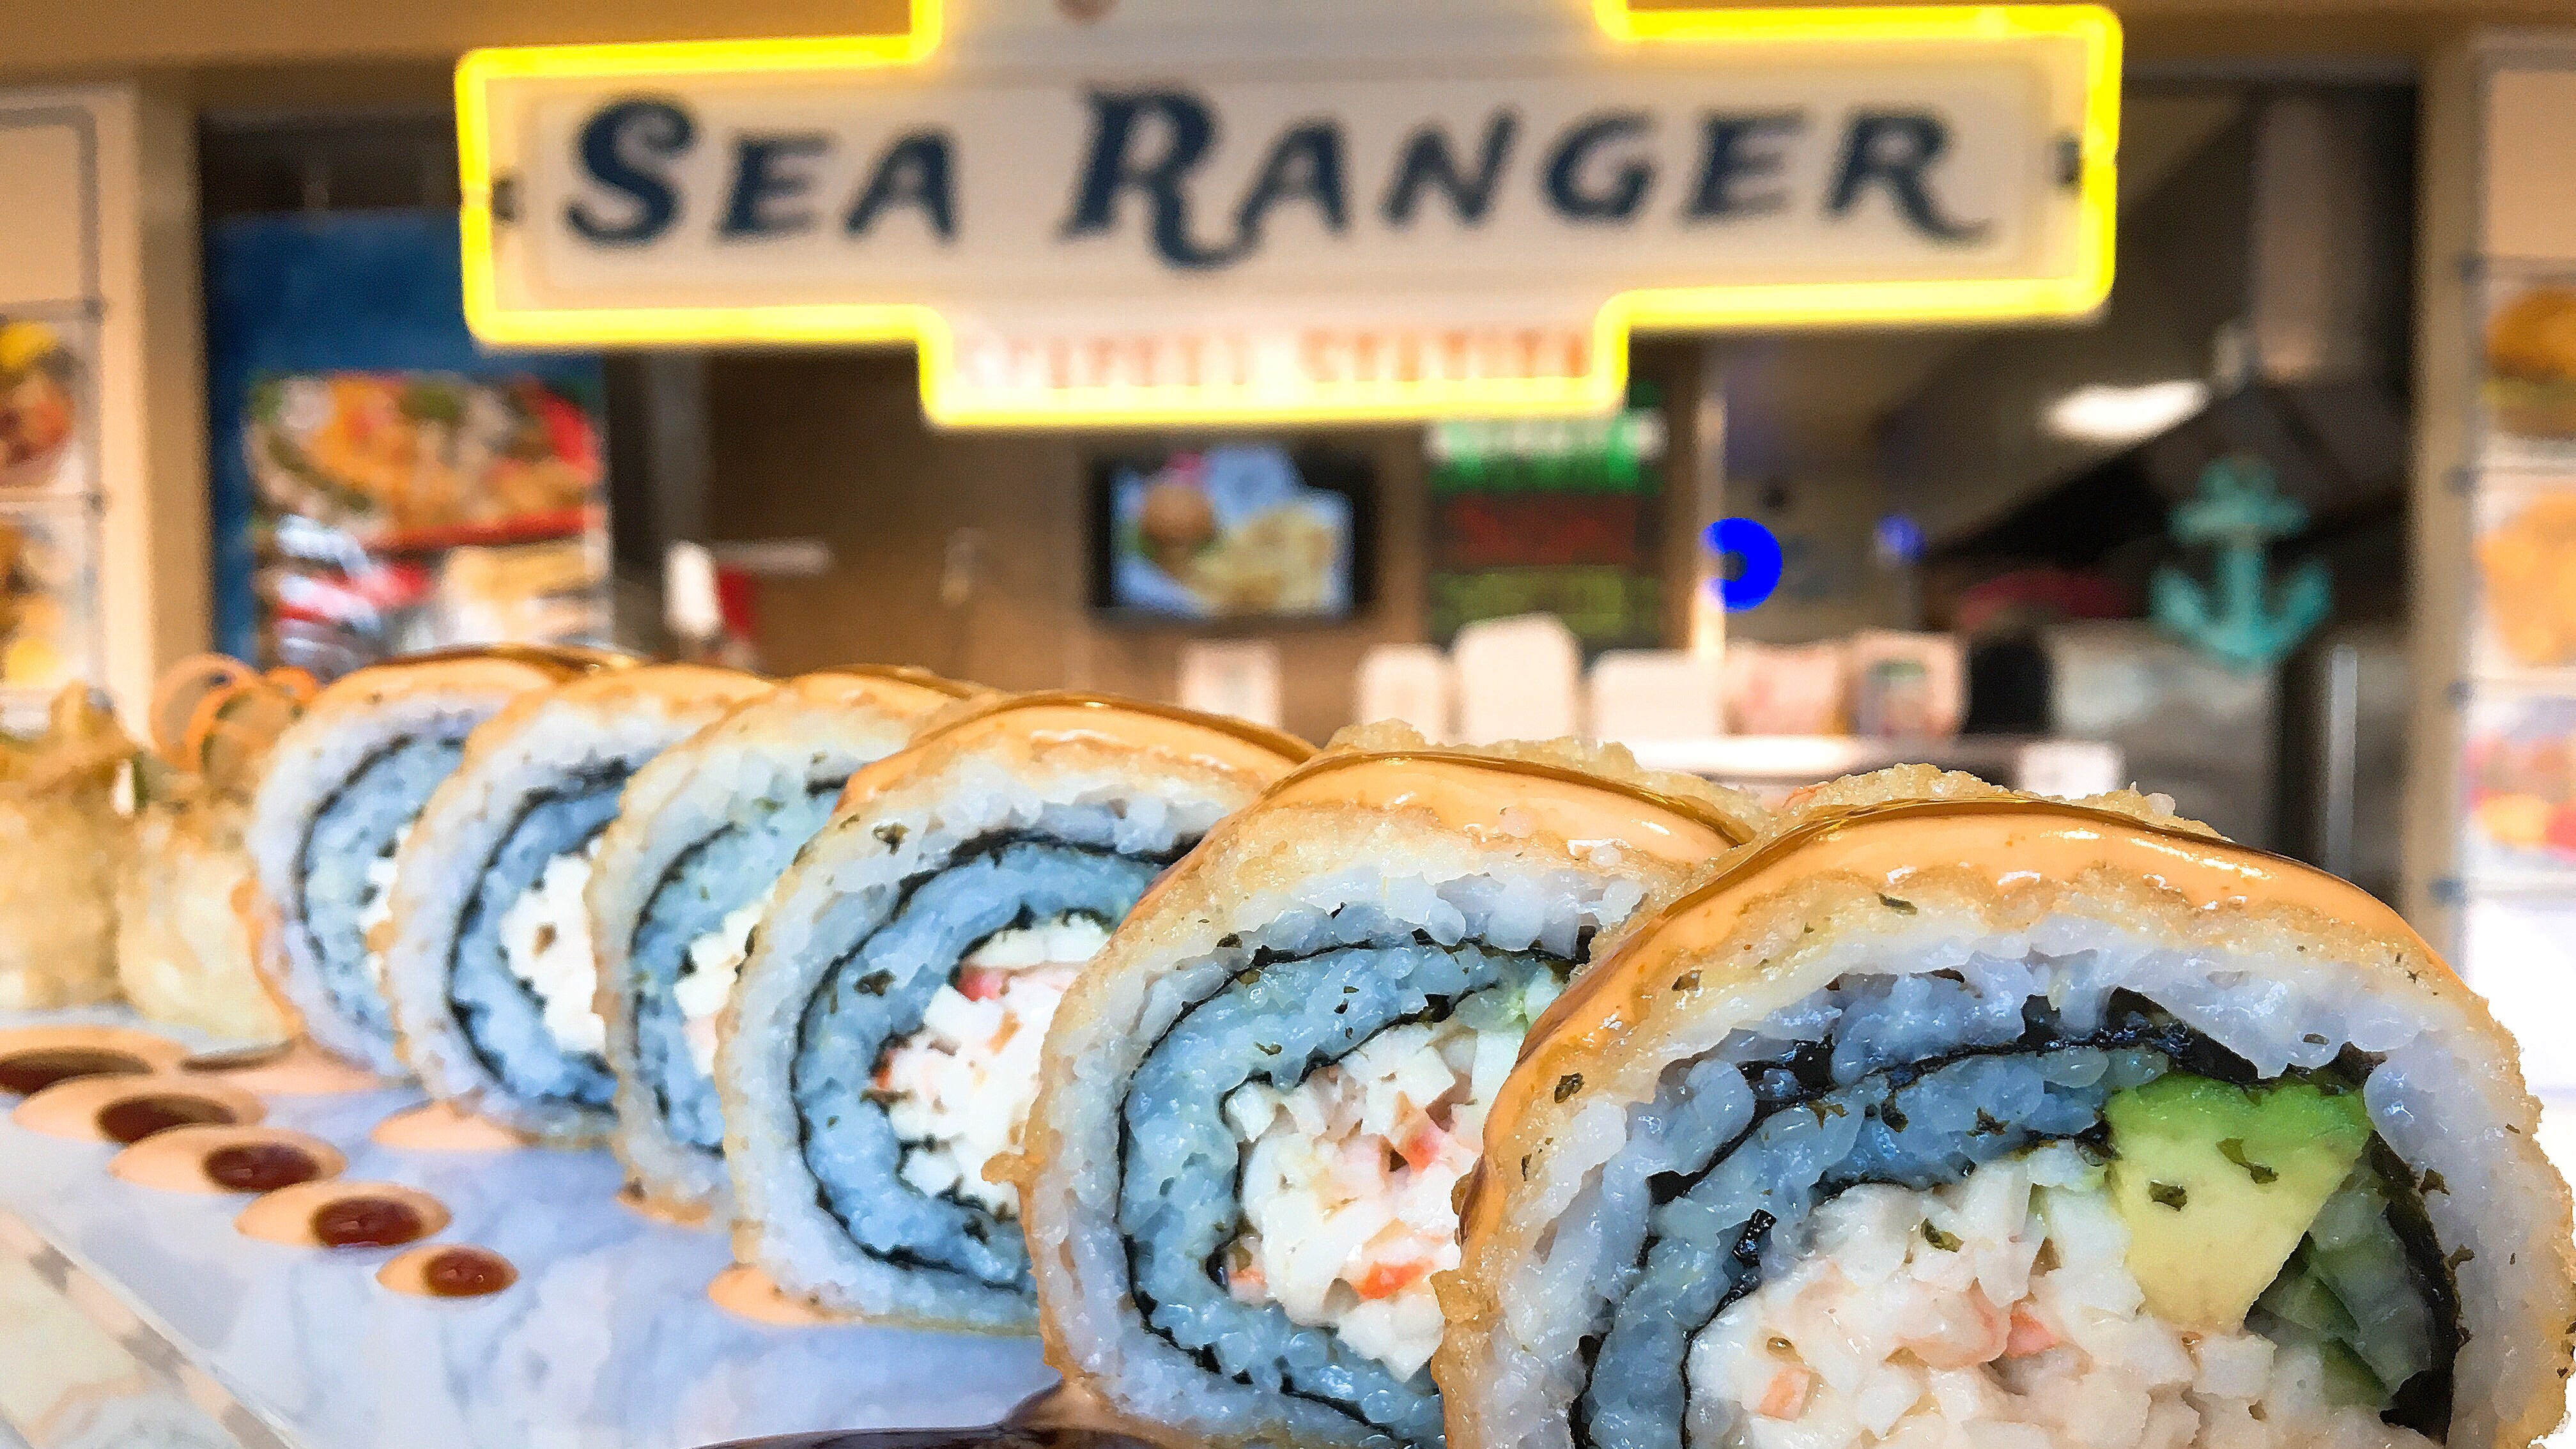 The Golden California Roll is part of the new vegan sushi menu at Sea Ranger Seafood Station in Ventura.